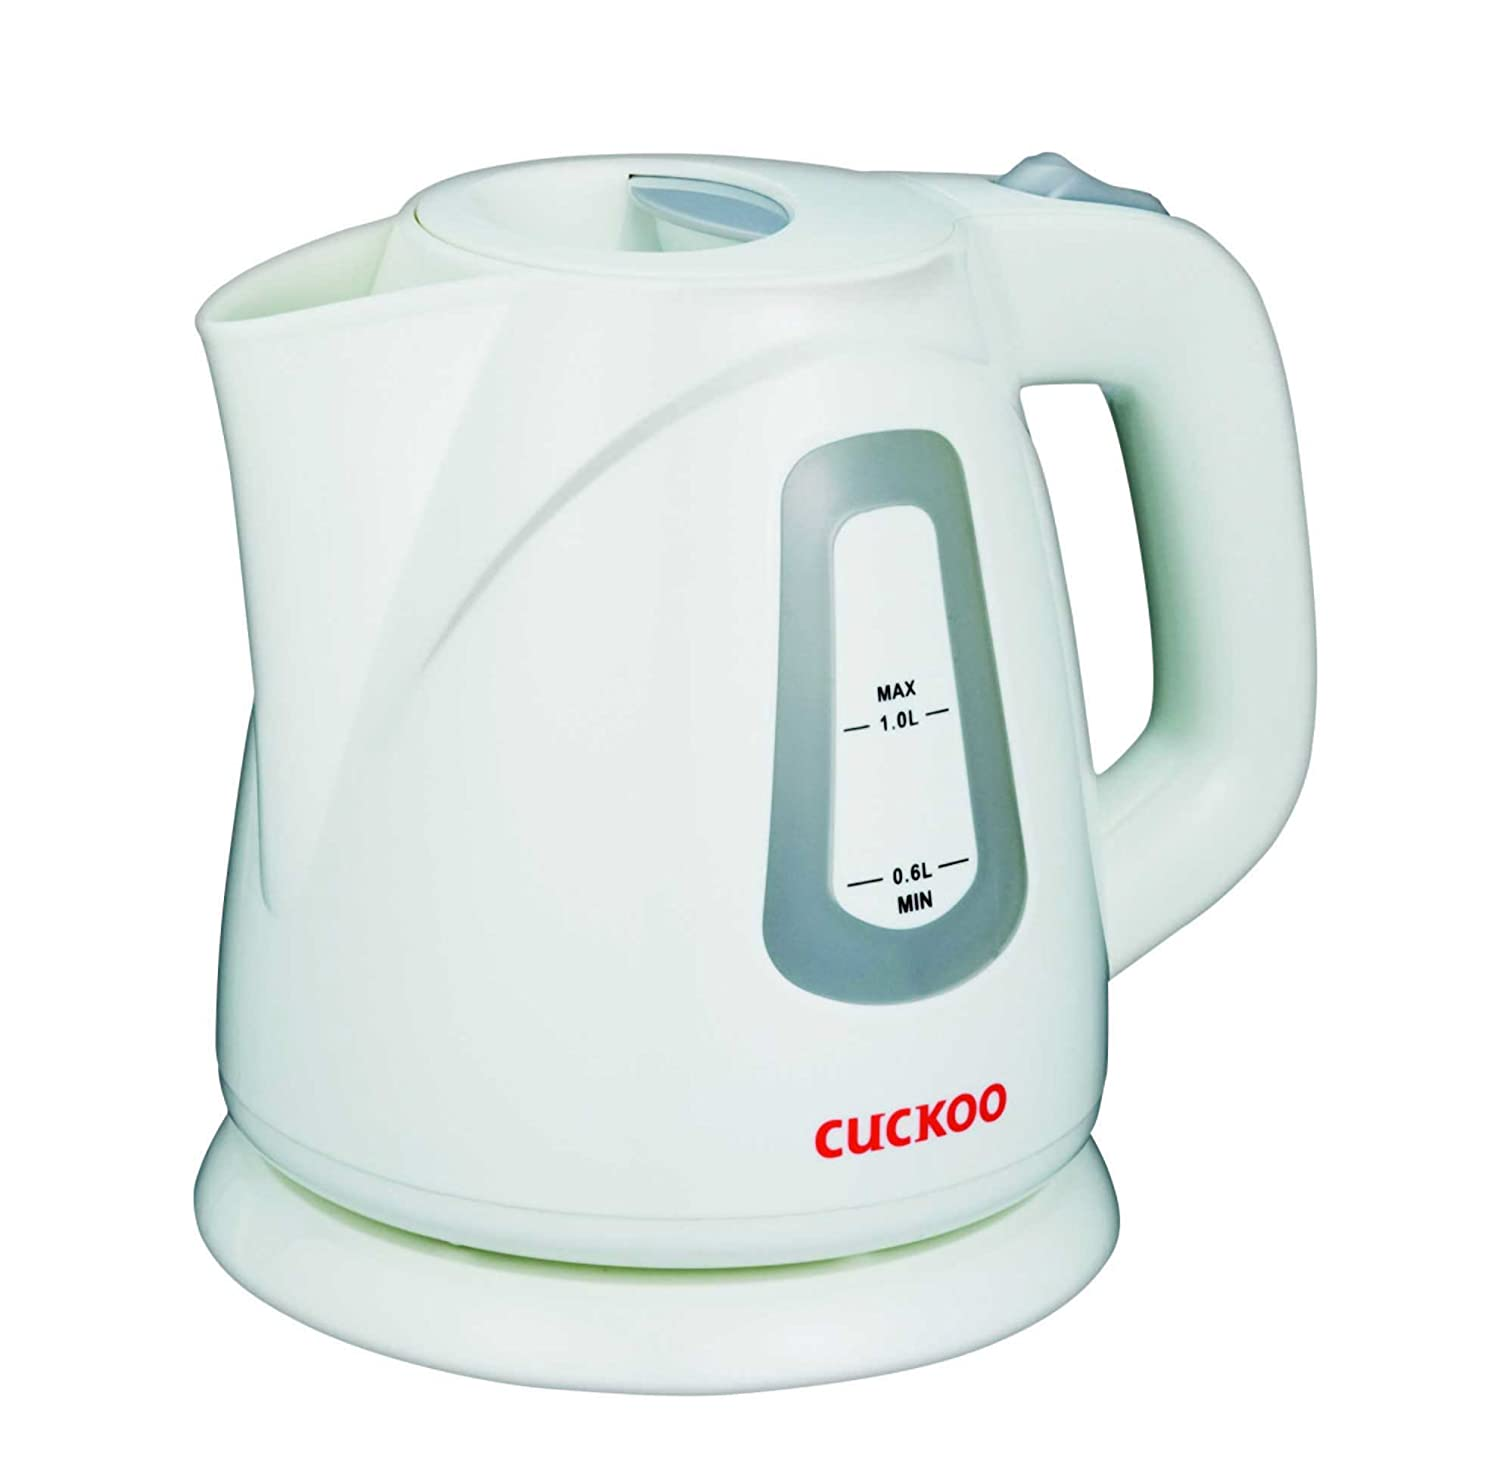 Cuckoo Ck102w Automatic Electric Kettle 85 X 63 66 Tiger Rice Cooker Wiring Diagram Inches Hot Tea Machines Kitchen Dining